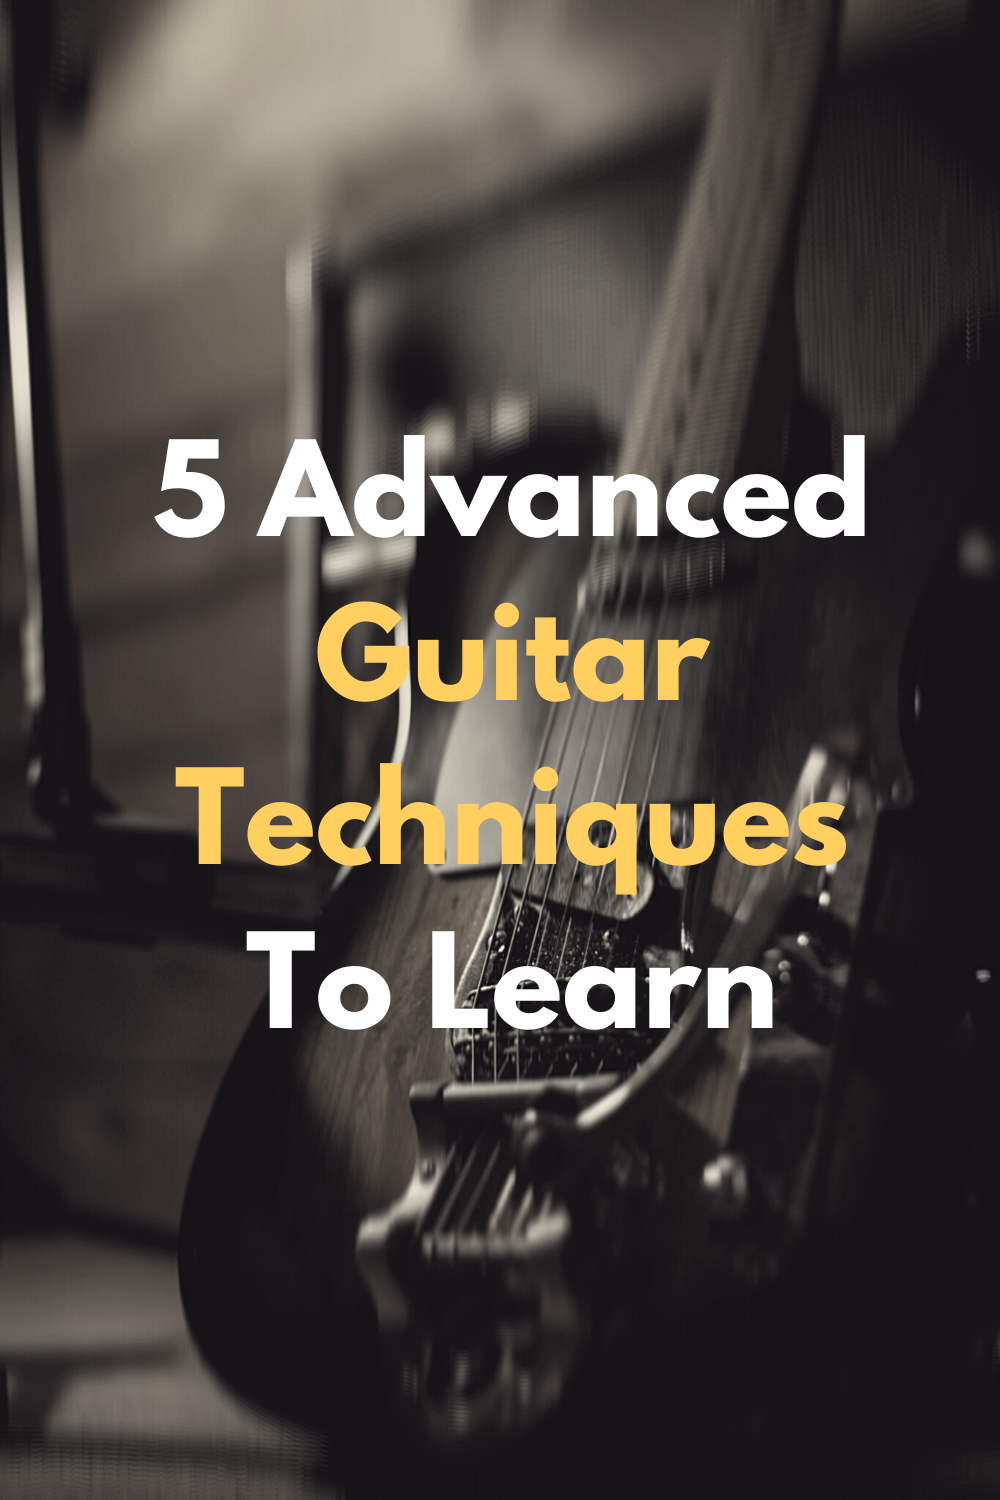 Advance Guitar Techniques To Learn In 2020 Elementary Music Lessons Playing Guitar Vocal Lessons